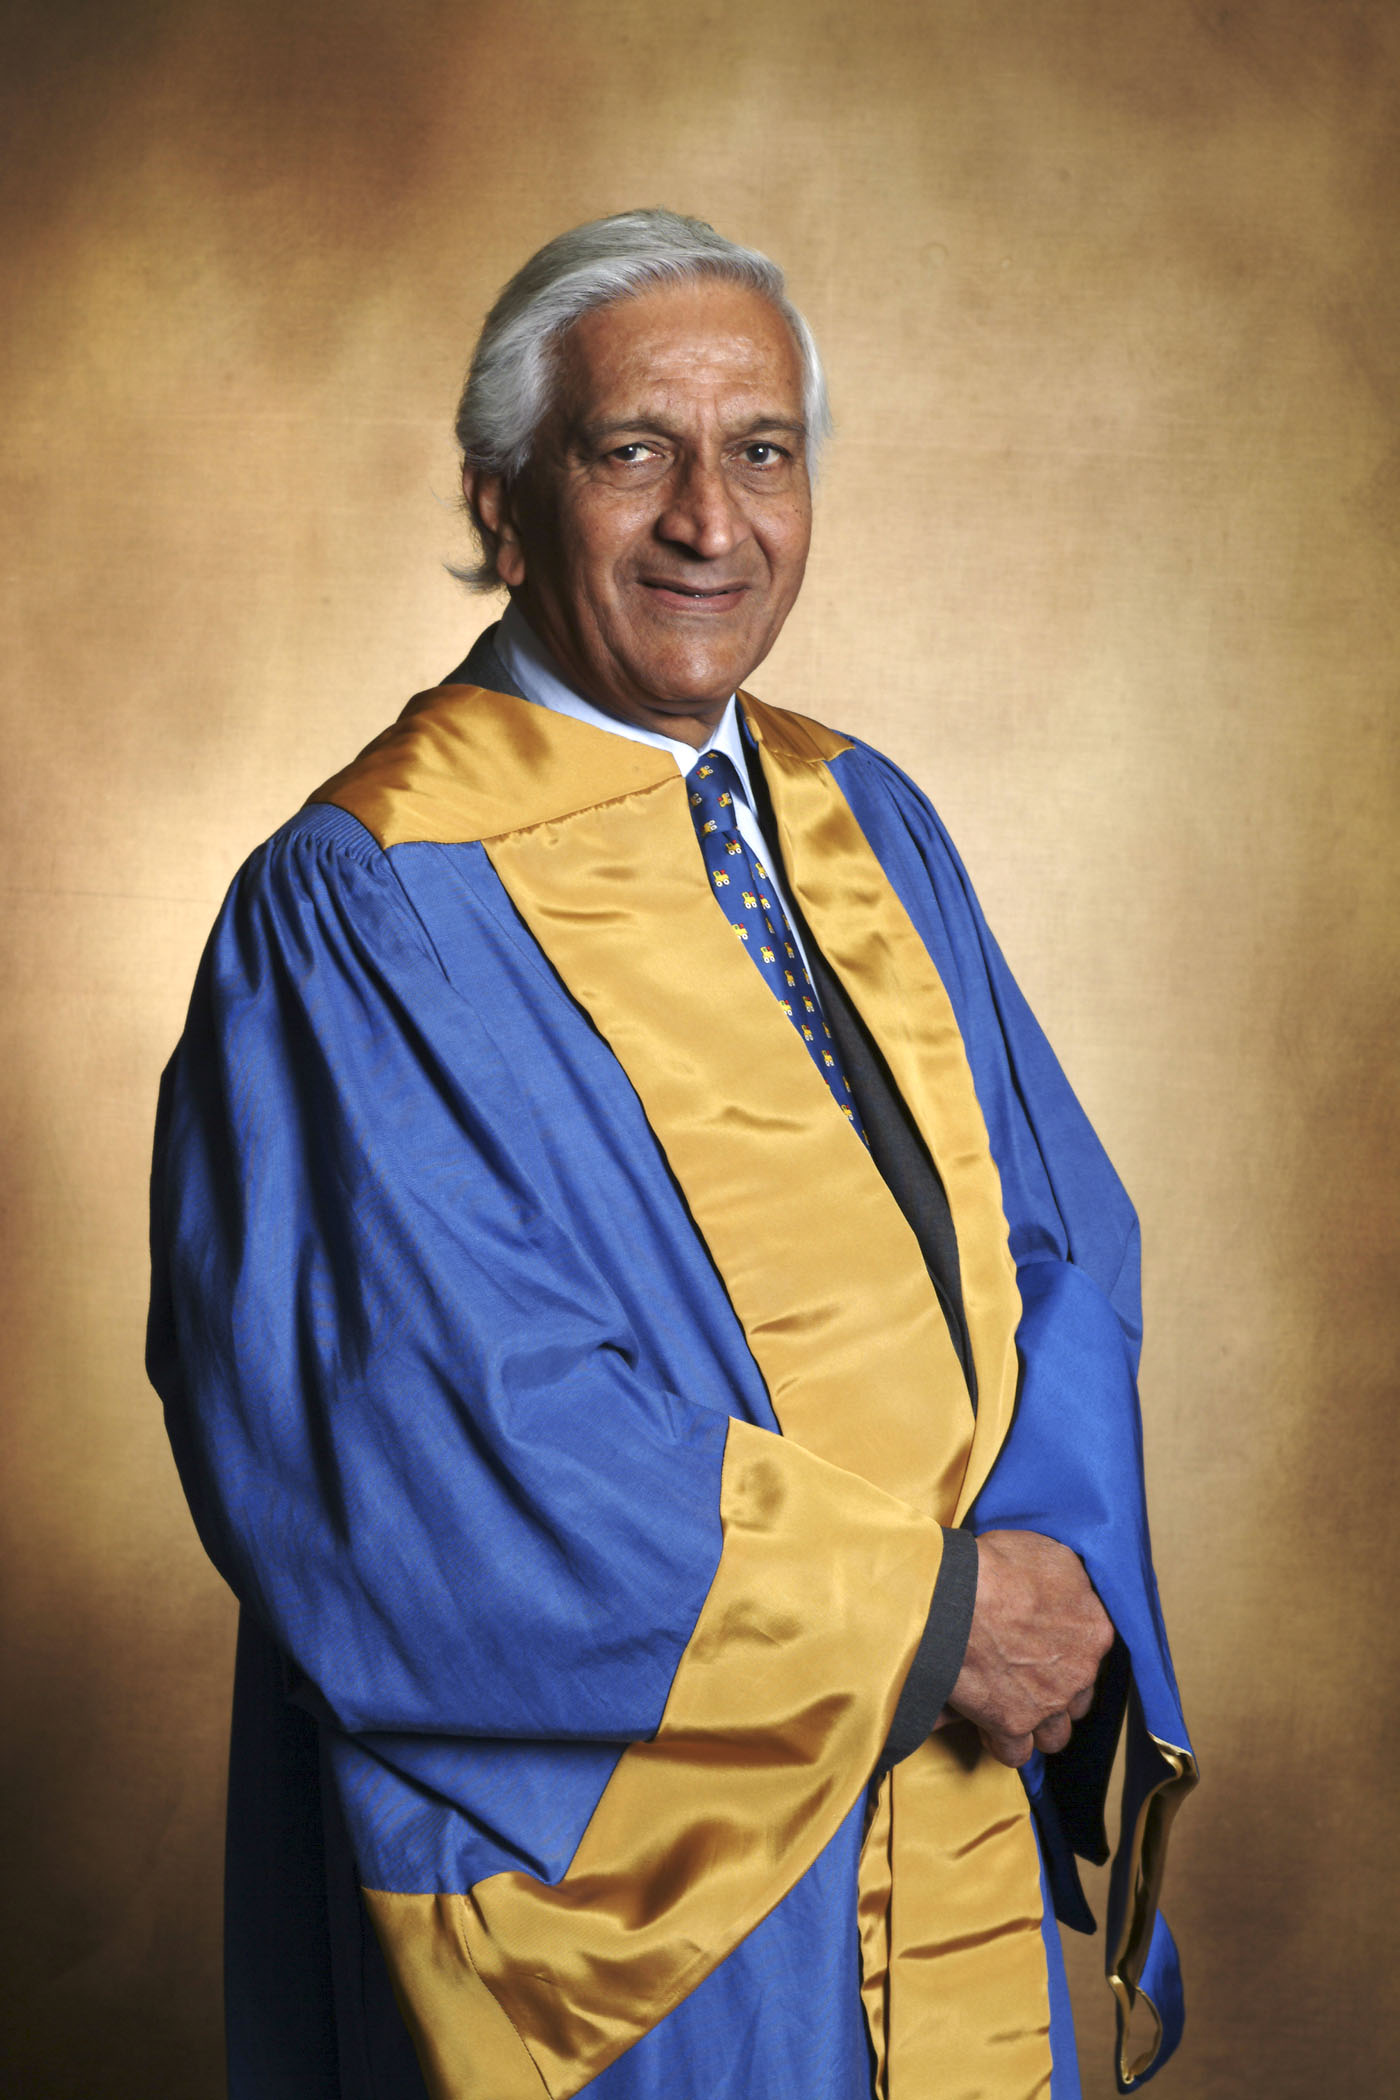 a photo of the Lord Patel, the new chancellor